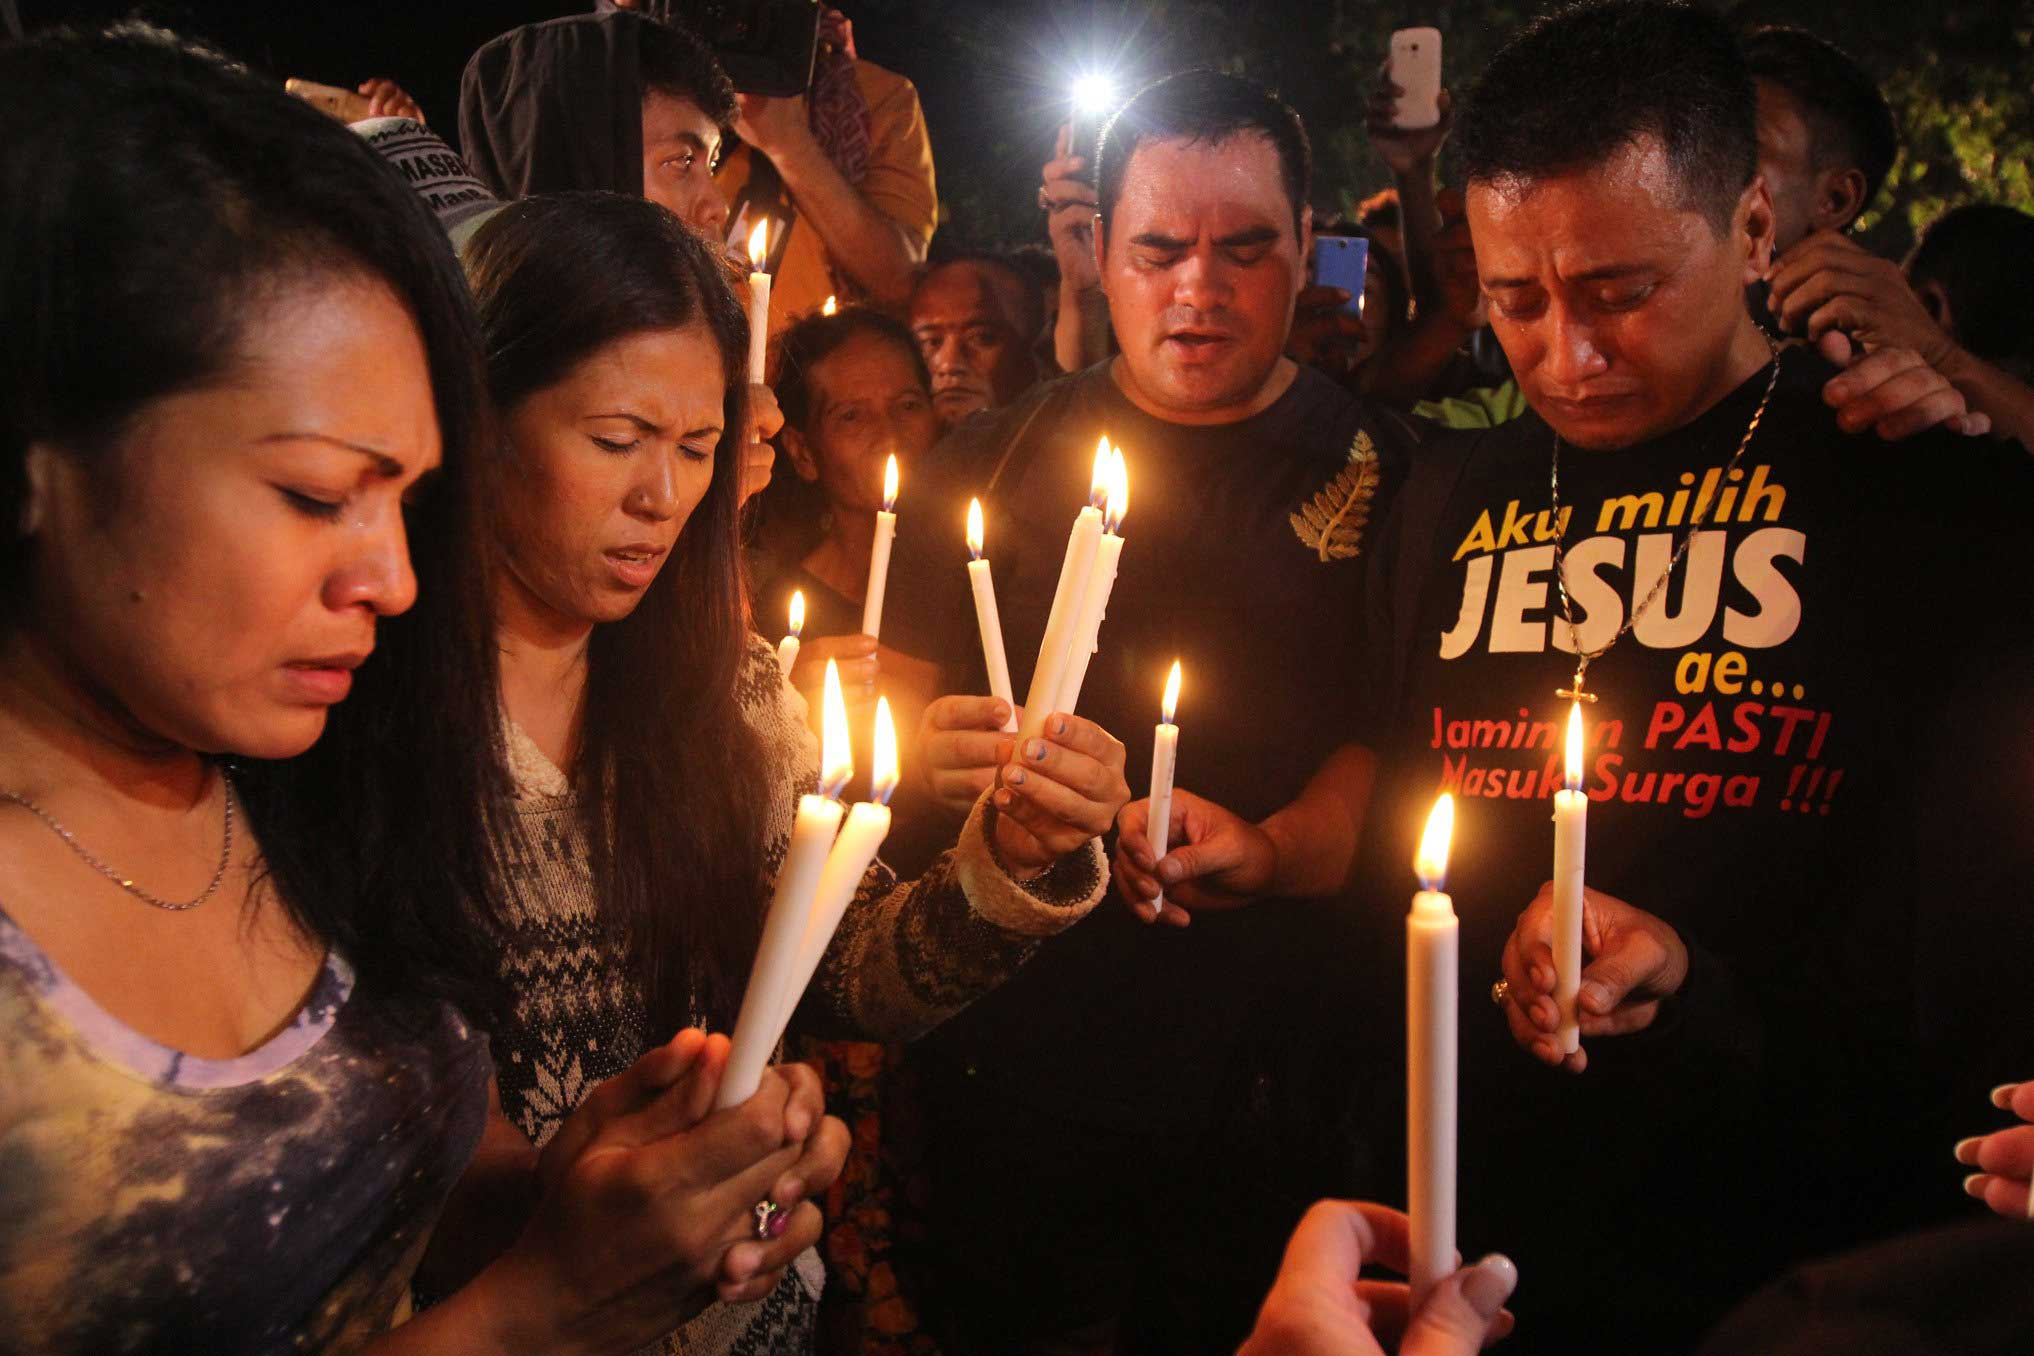 People hold candles to pray for death-row prisoners at Wijayapura port in Cilacap, Indonesia on April 29, 2015.